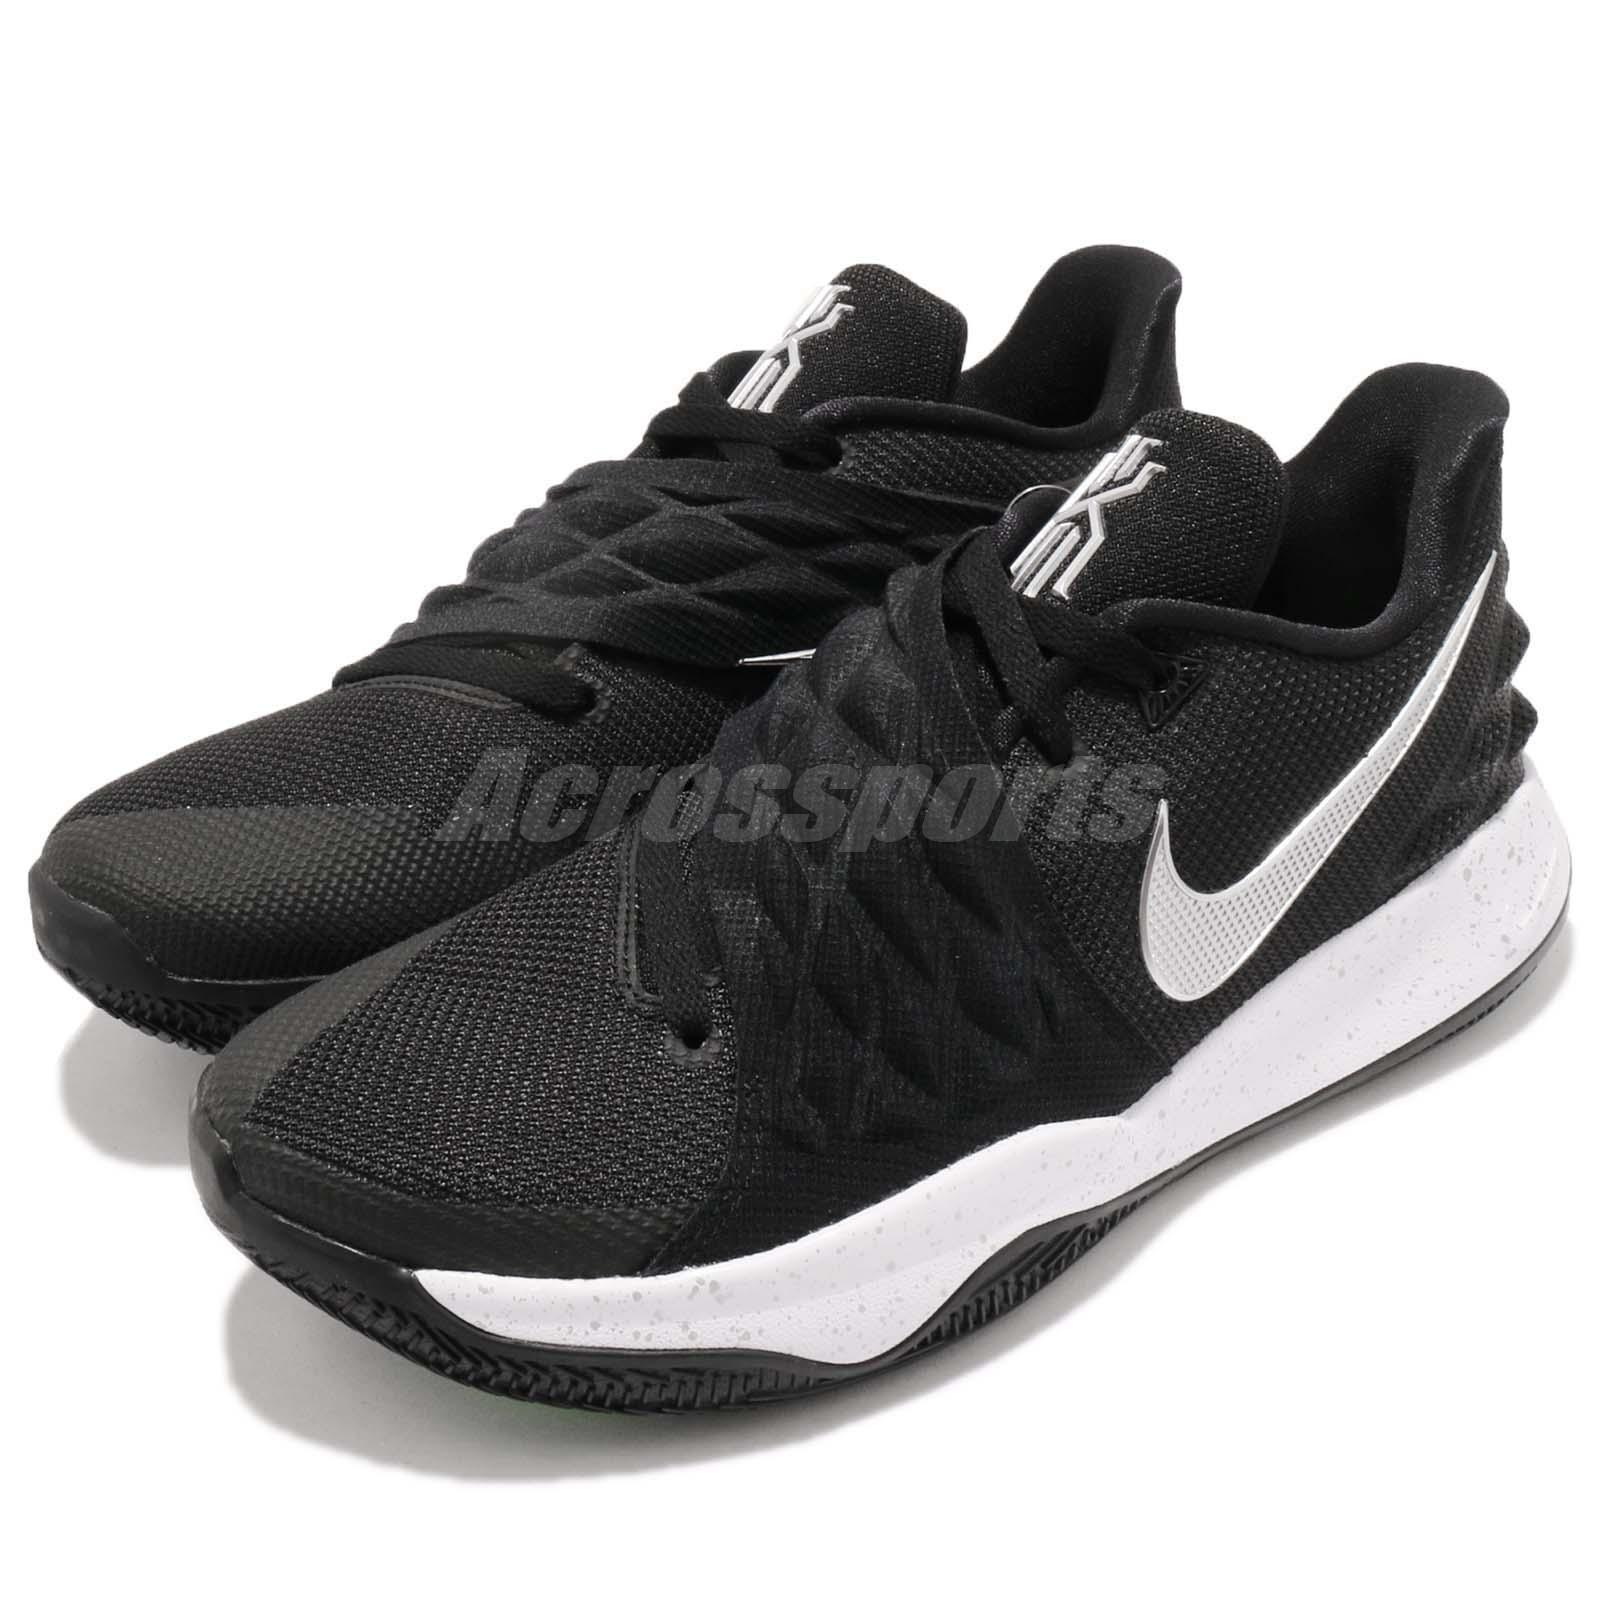 free shipping 0b5c8 75af9 Details about Nike Kyrie Low 1 EP Irving Metallic Silver Black Men  Basketball Shoe AO8980-003